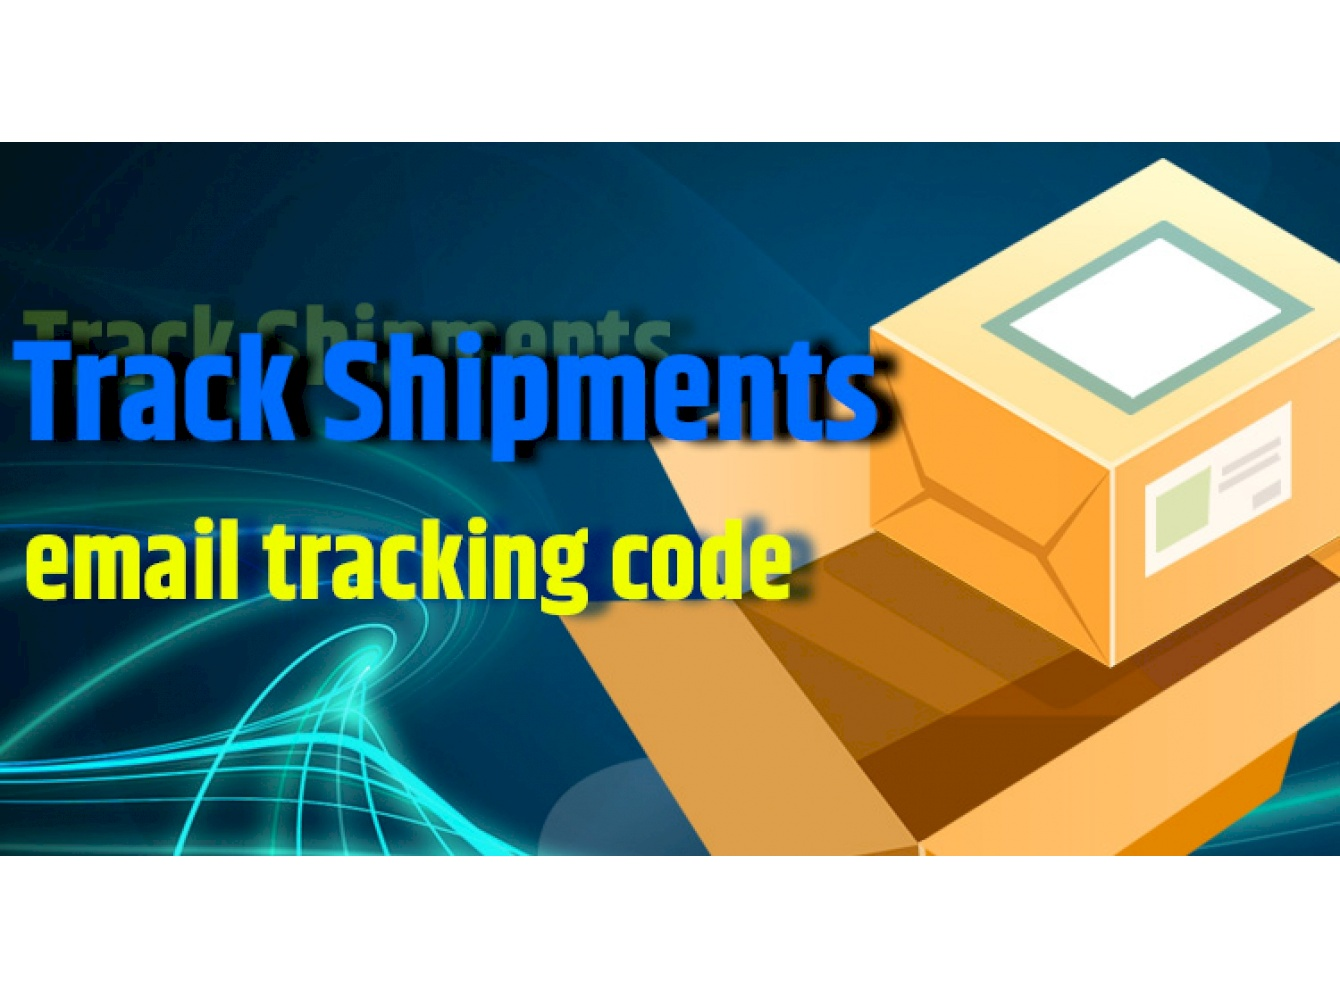 Track Shipments: email tracking code